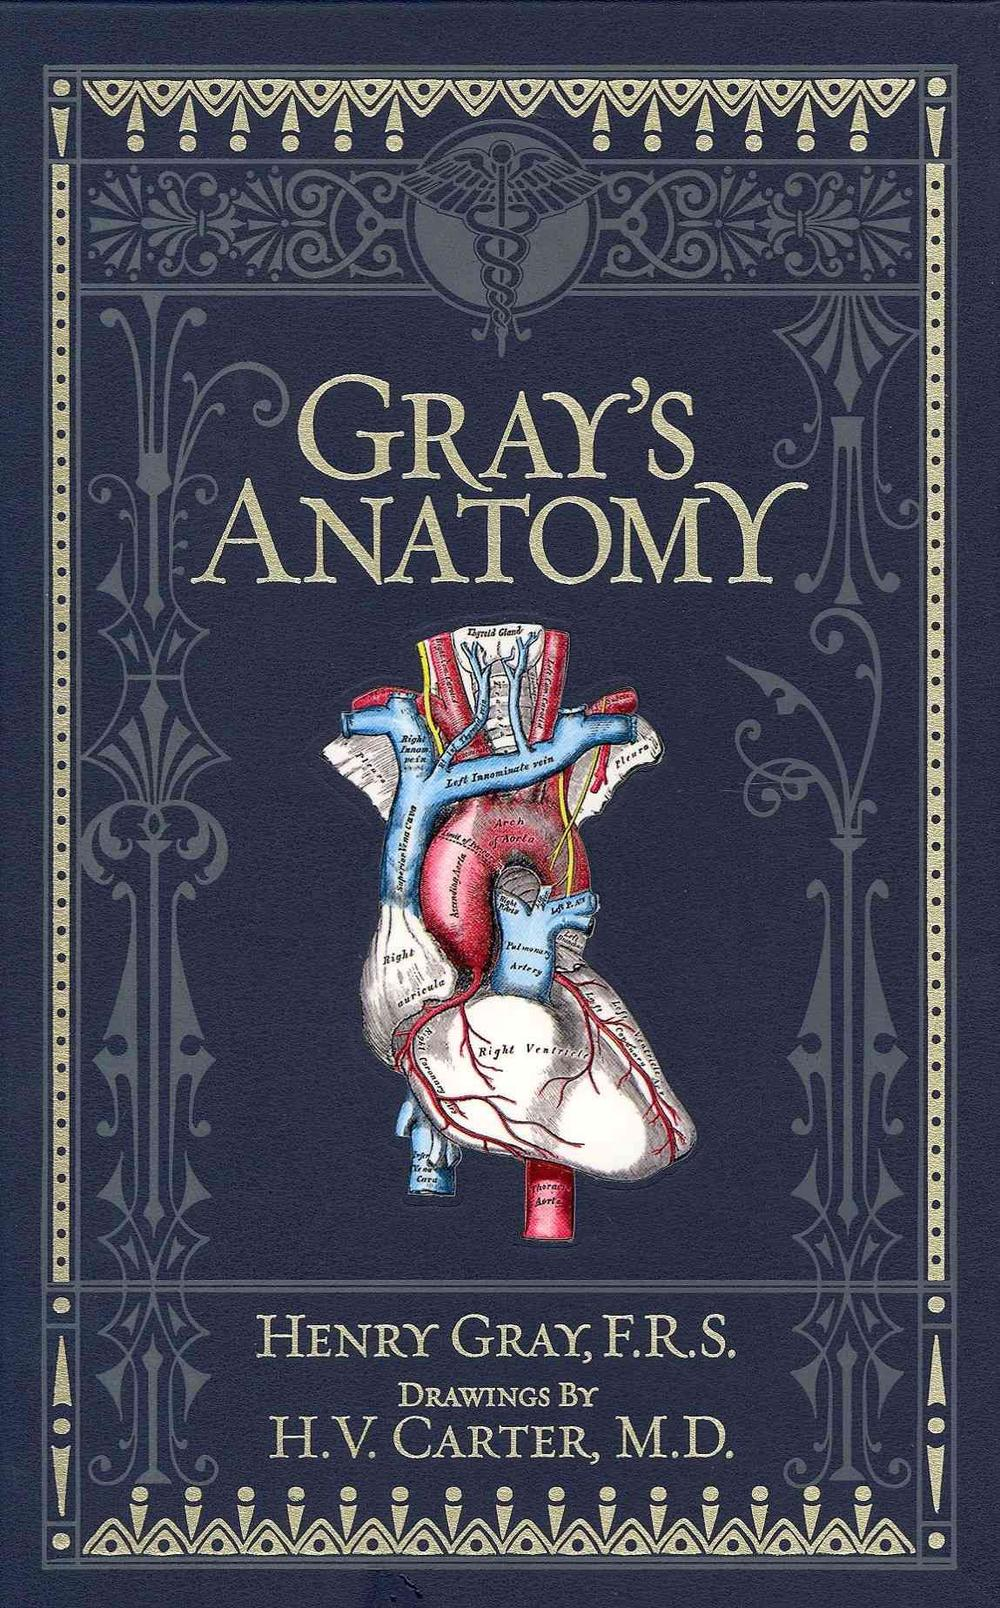 Gray\'s Anatomy by Henry Gray, Hardcover, 9781435114937 | Buy online ...